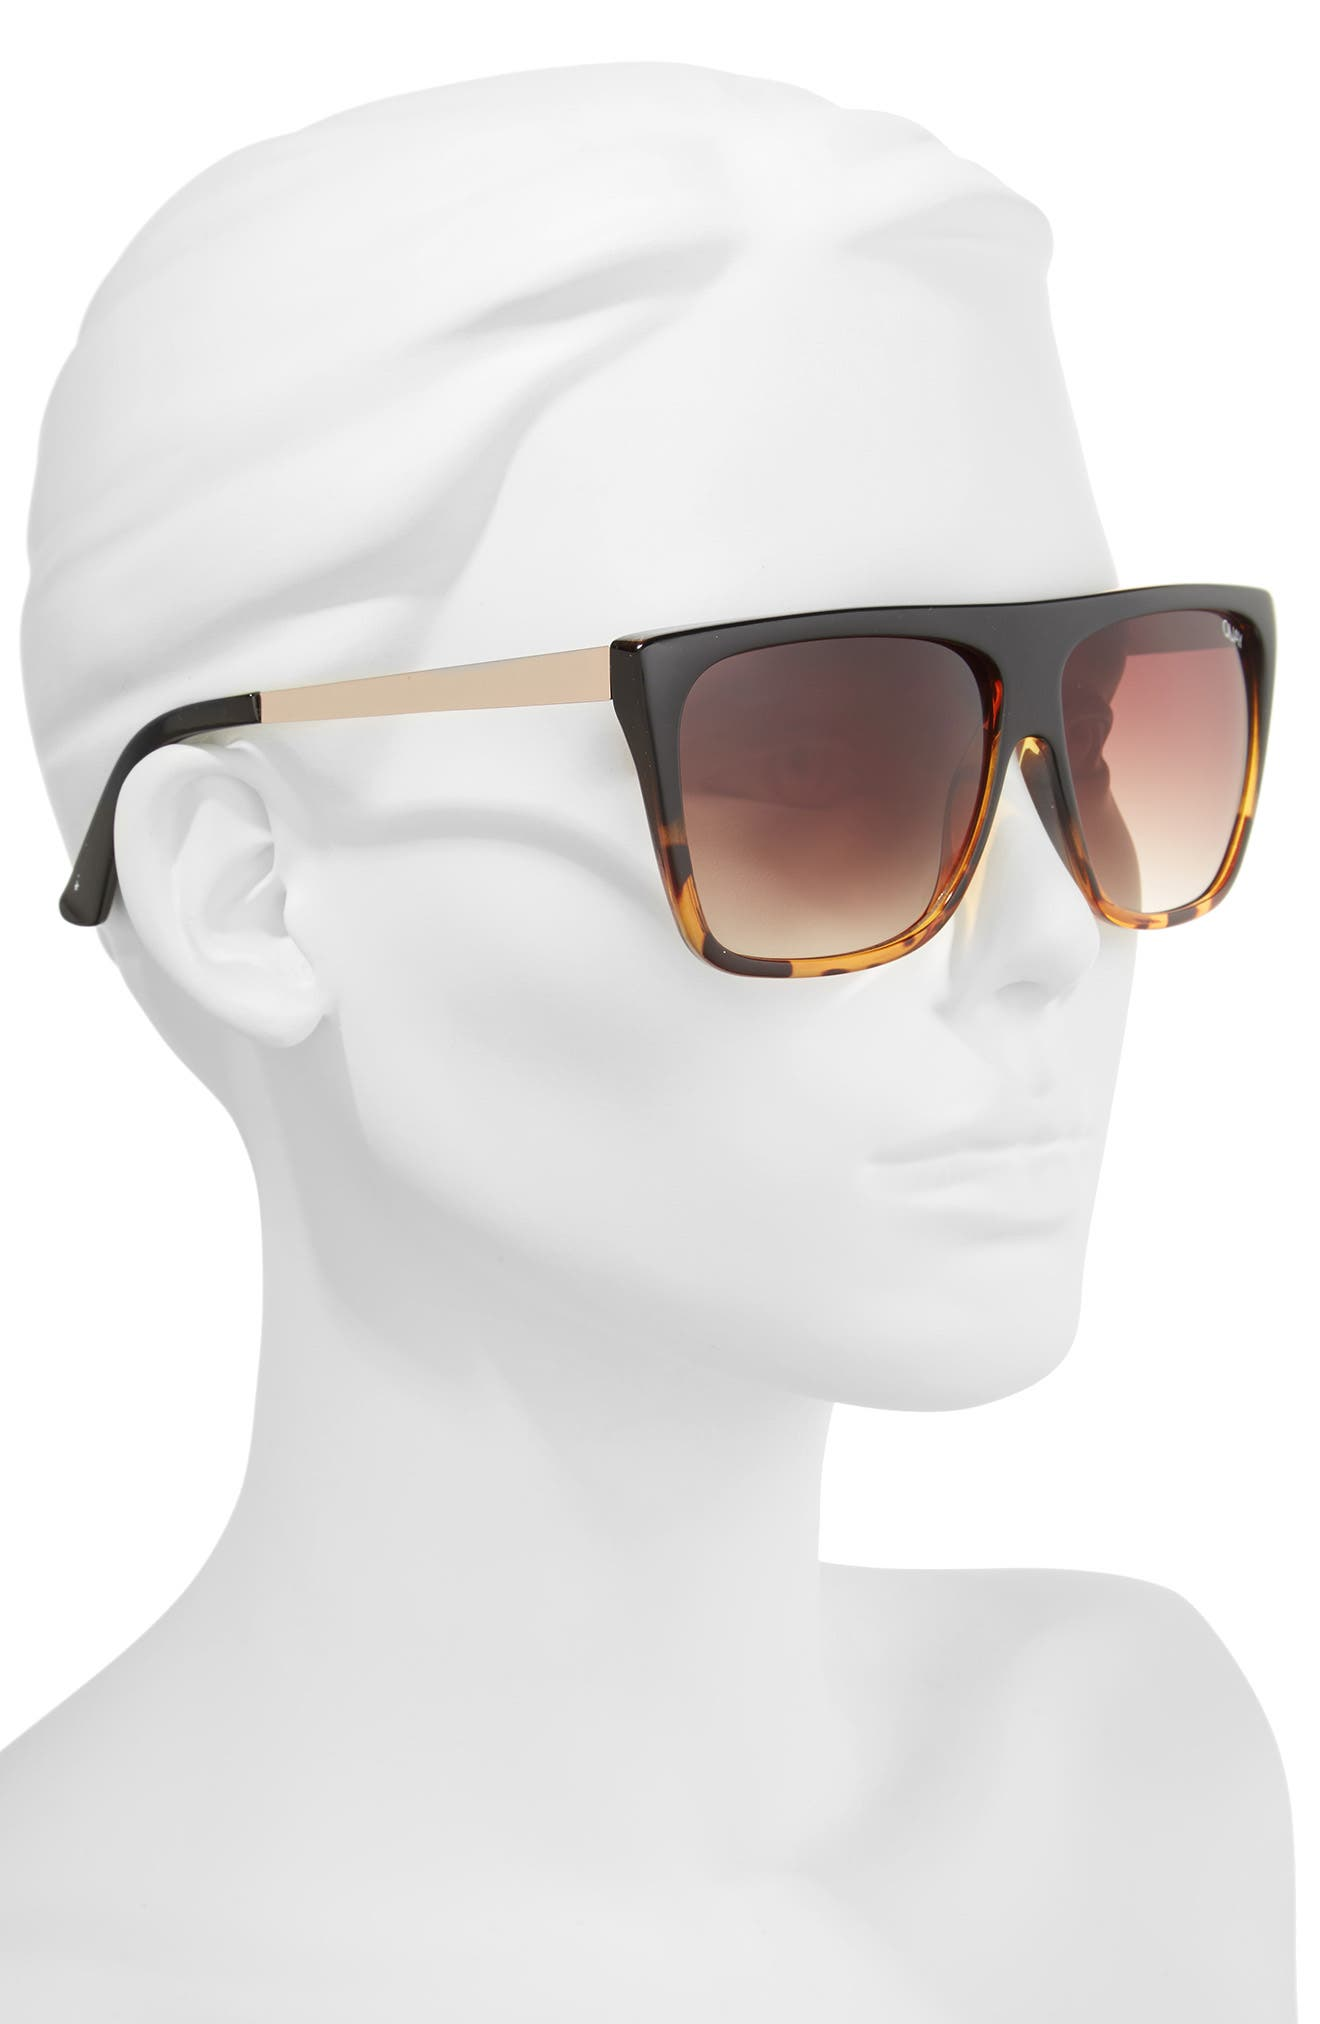 x Desi Perkins On the Low 60mm Square Sunglasses,                             Alternate thumbnail 2, color,                             TORT/ BROWN